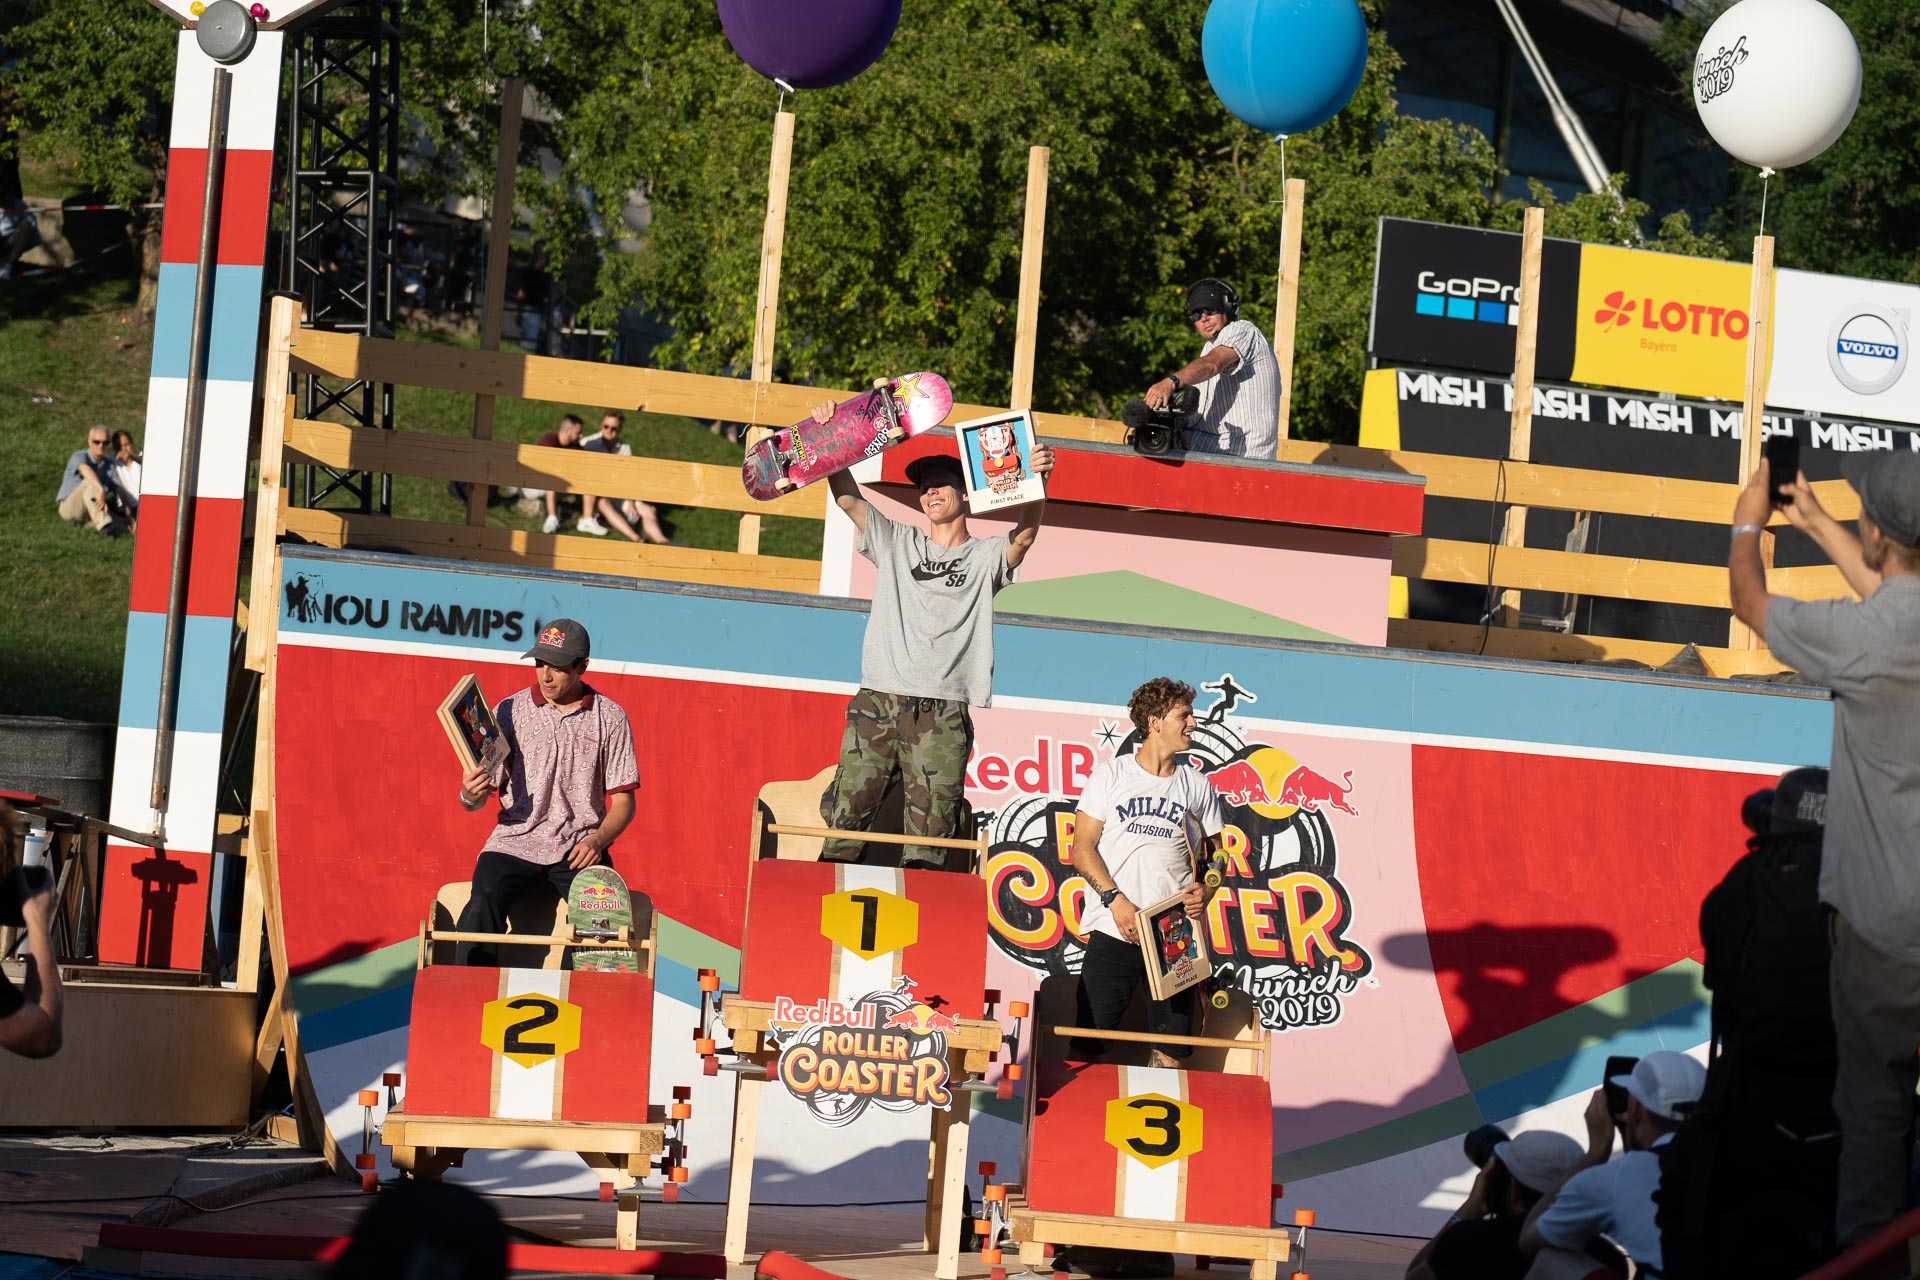 Red Bull Roller Coaster Male Podium